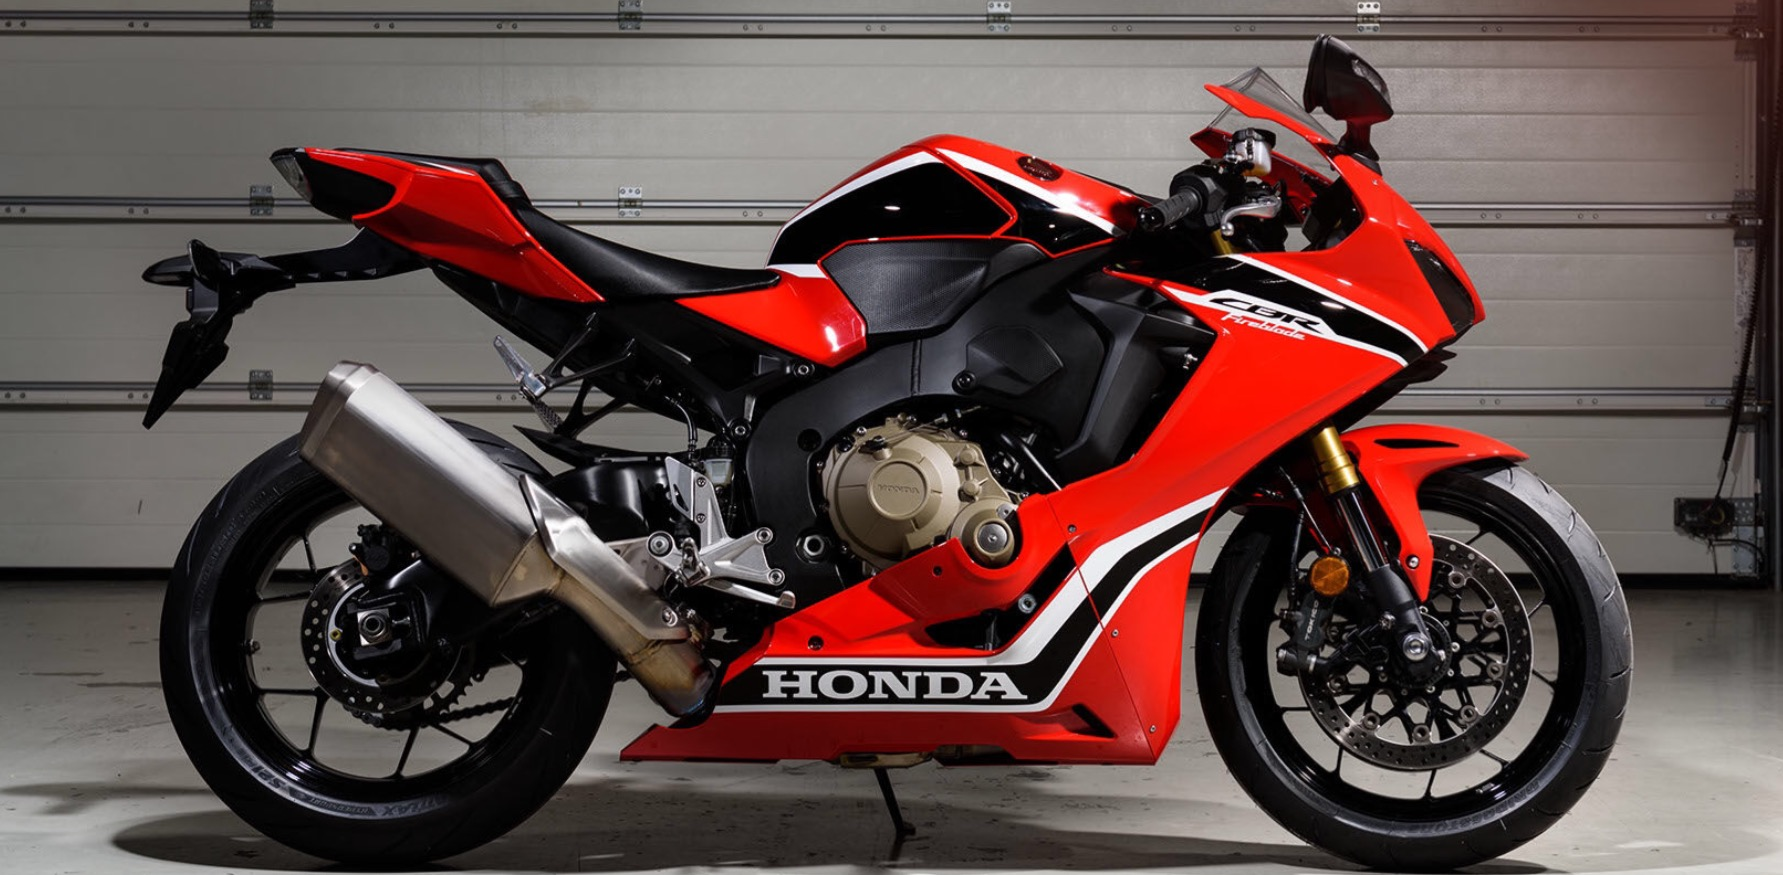 2017 honda cbr 1000 put the rr back on the litrebike map. Black Bedroom Furniture Sets. Home Design Ideas